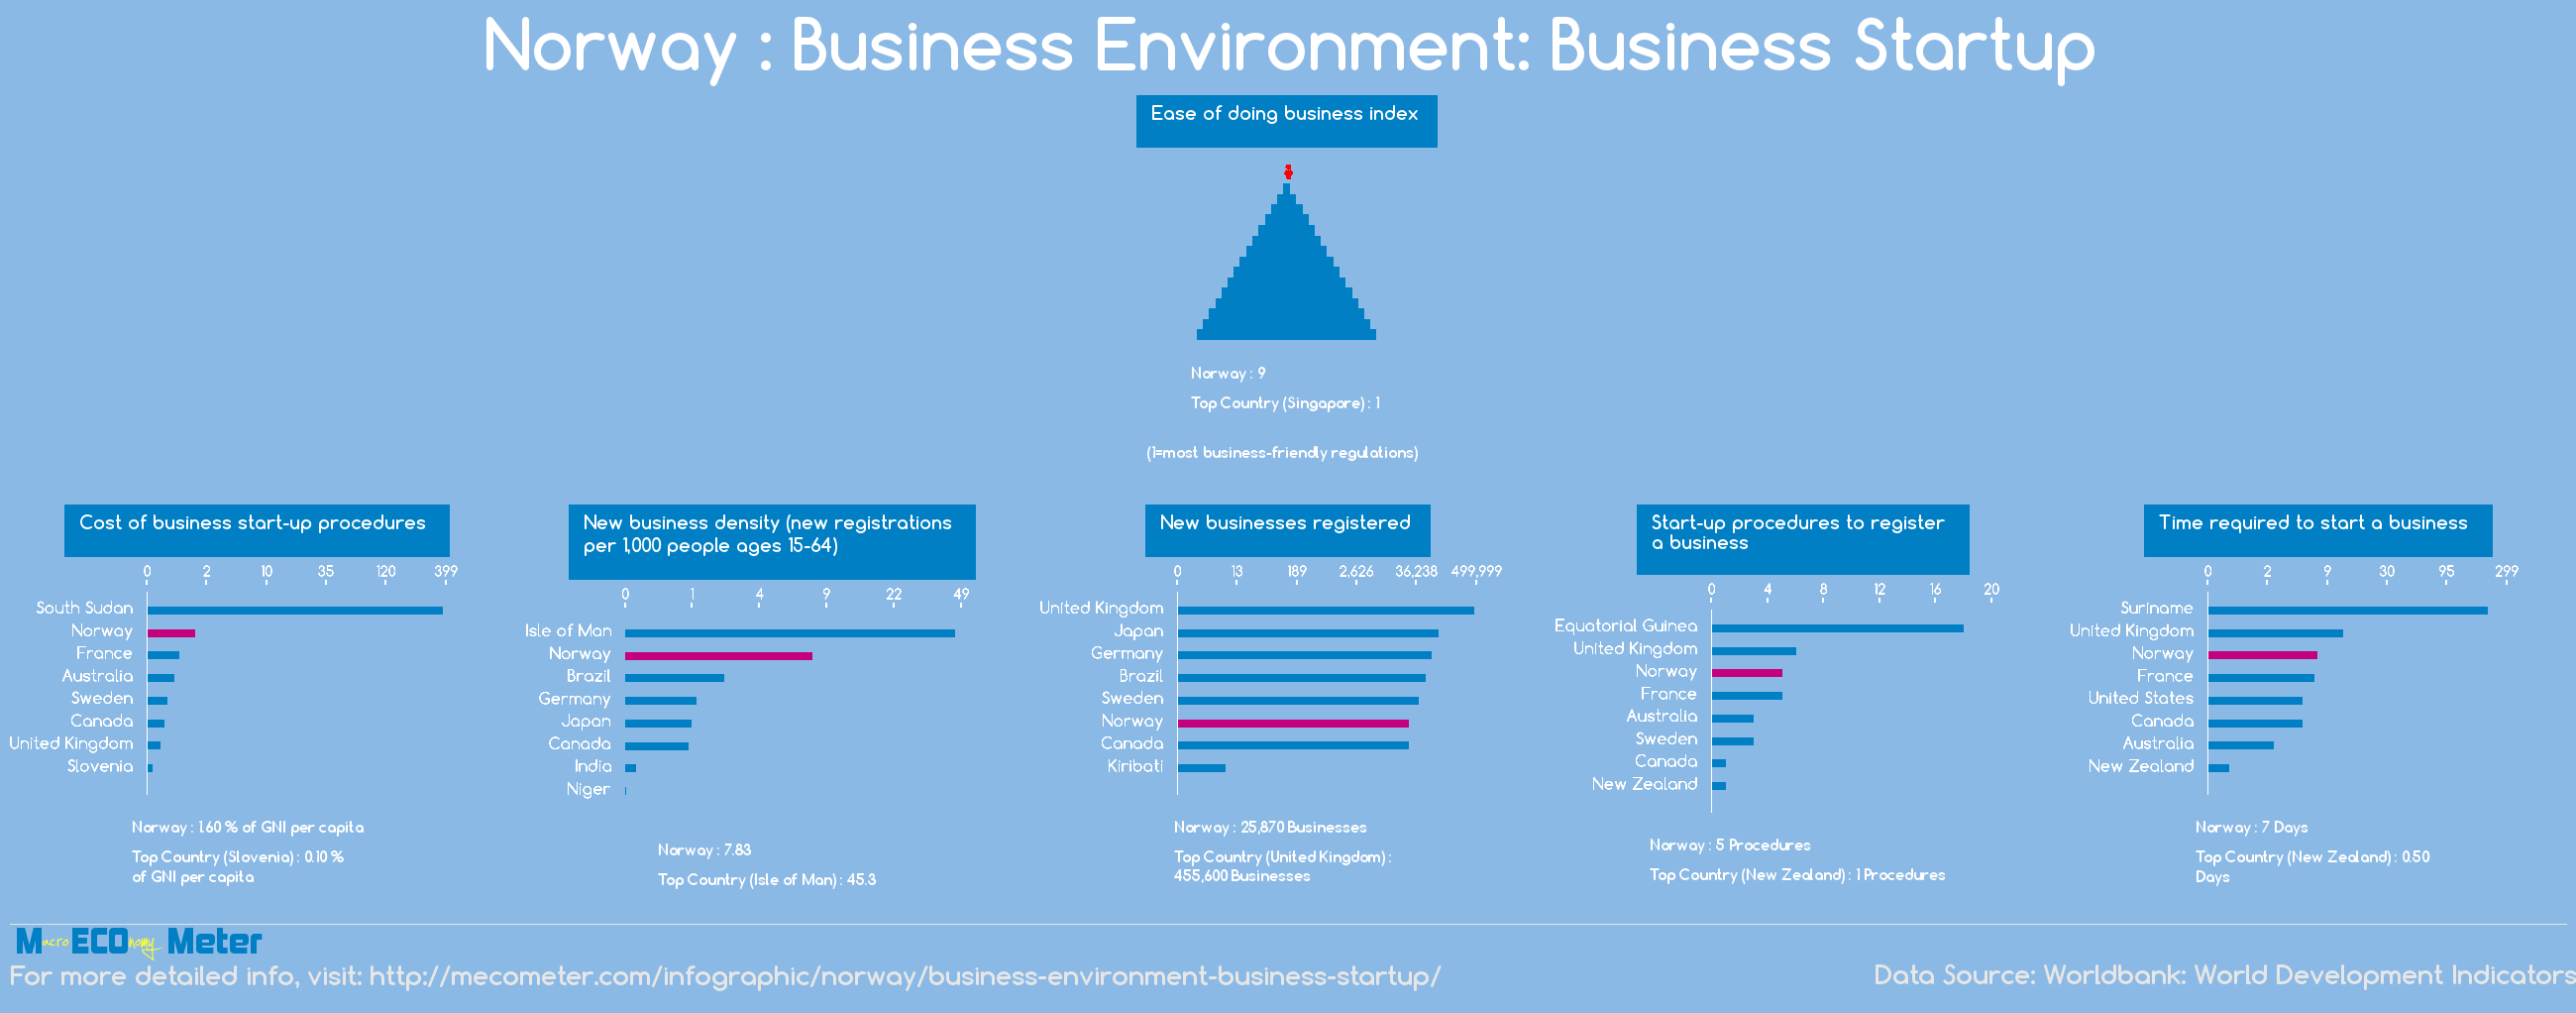 Norway : Business Environment: Business Startup